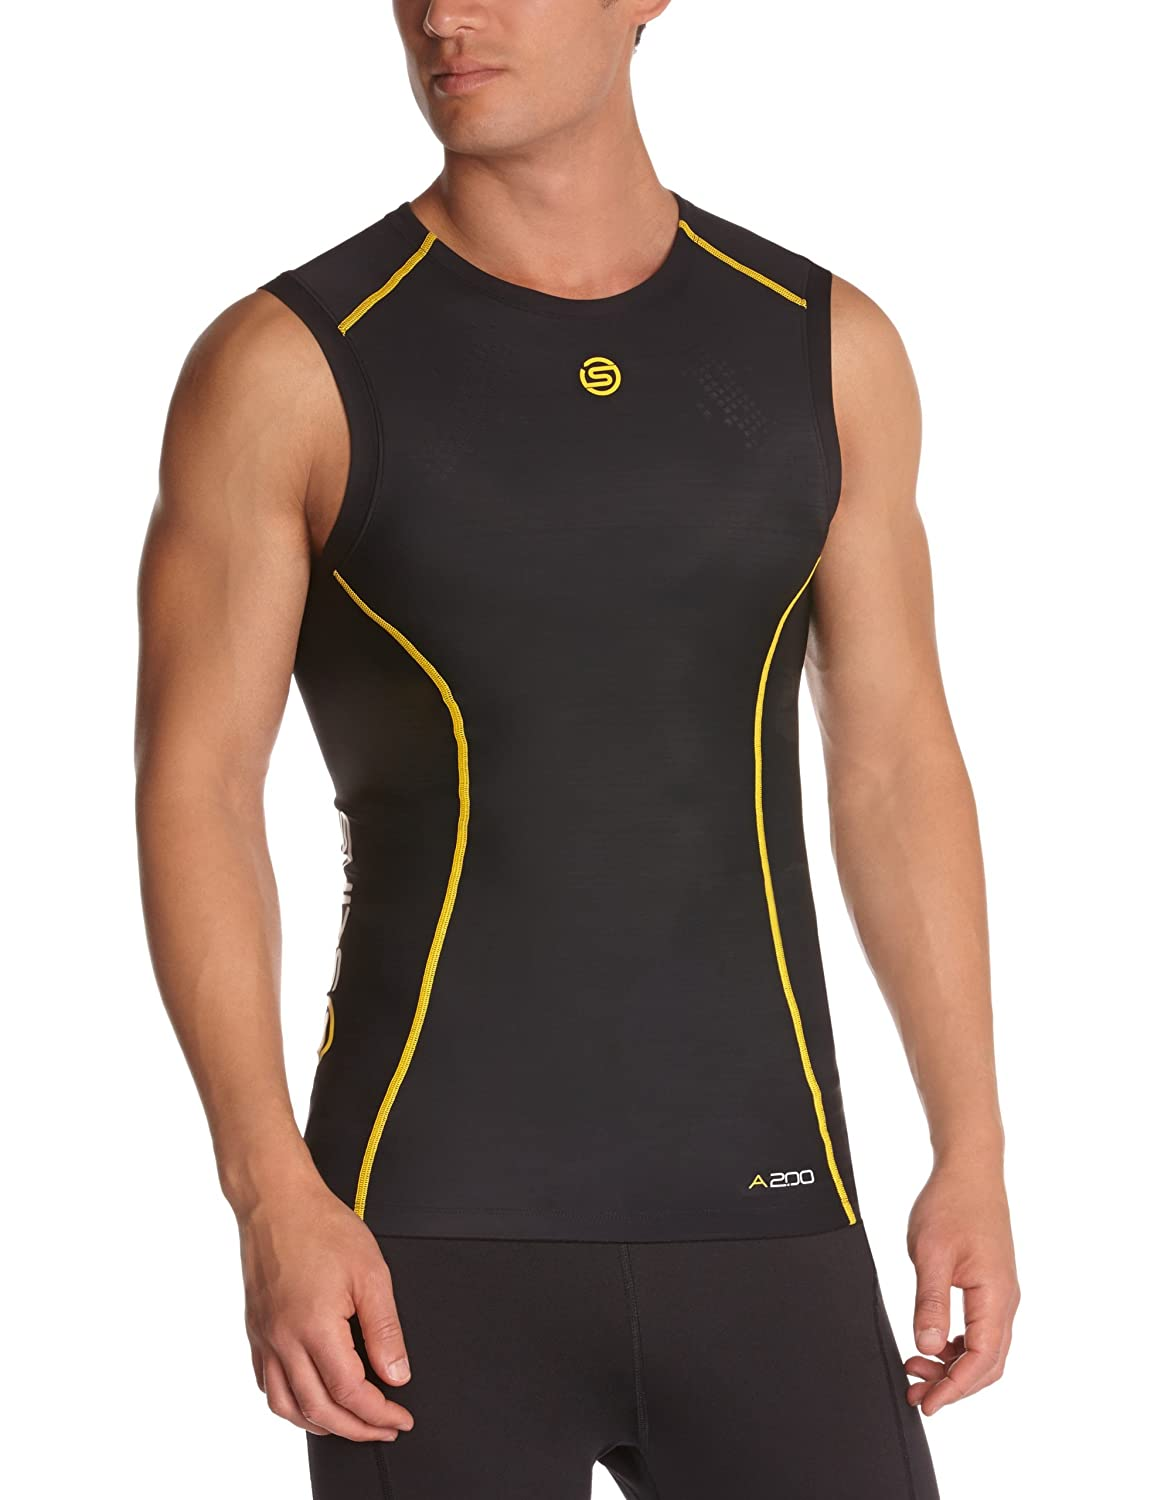 Skins A200 Sleeveless Men's Compression Top